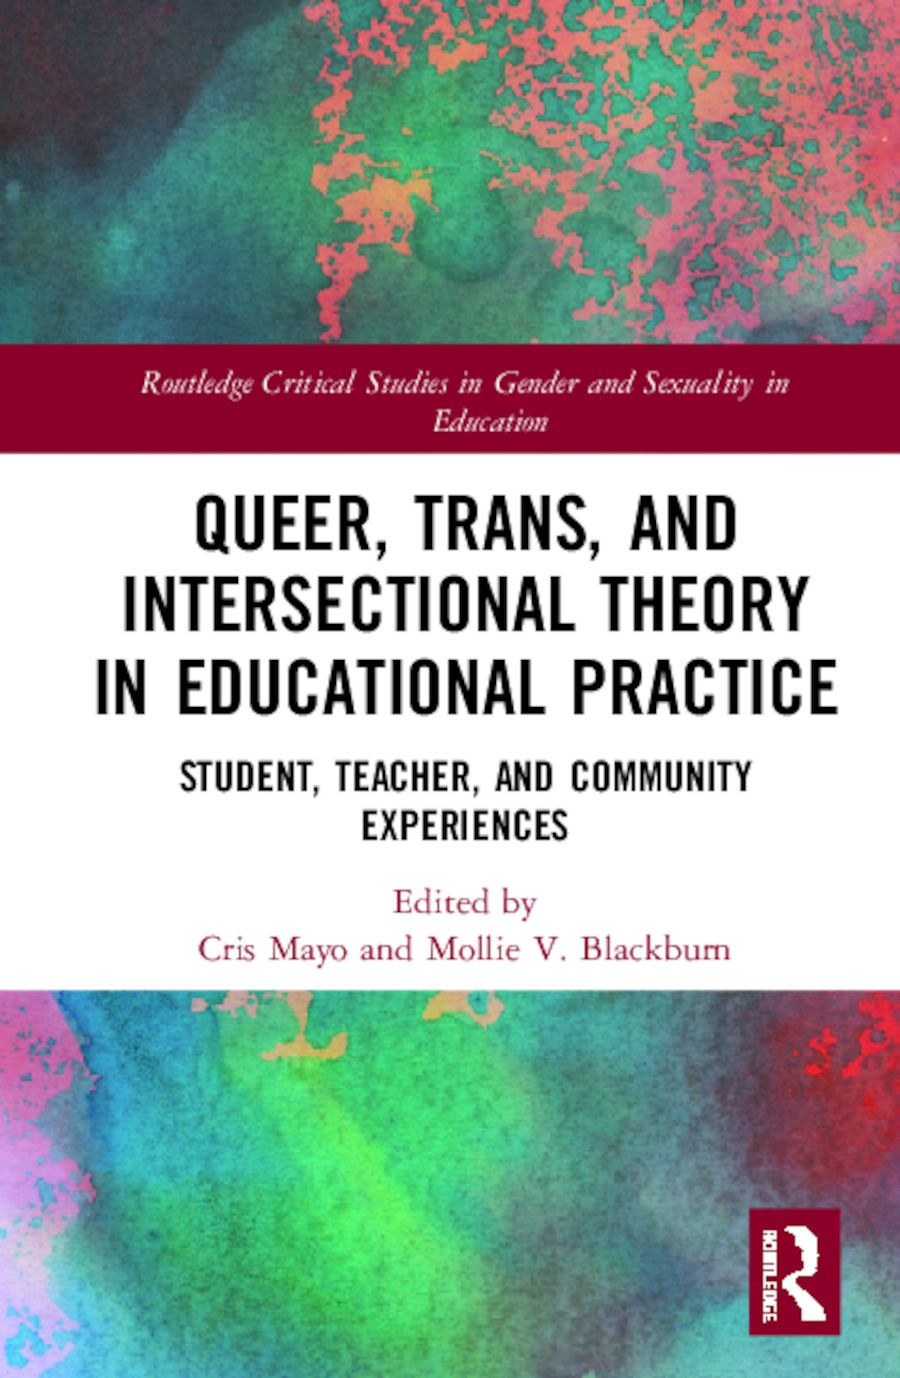 Queer, Trans, and Intersectional Theory in Educational Practice: Student, Teacher, and Community Experiences book cover